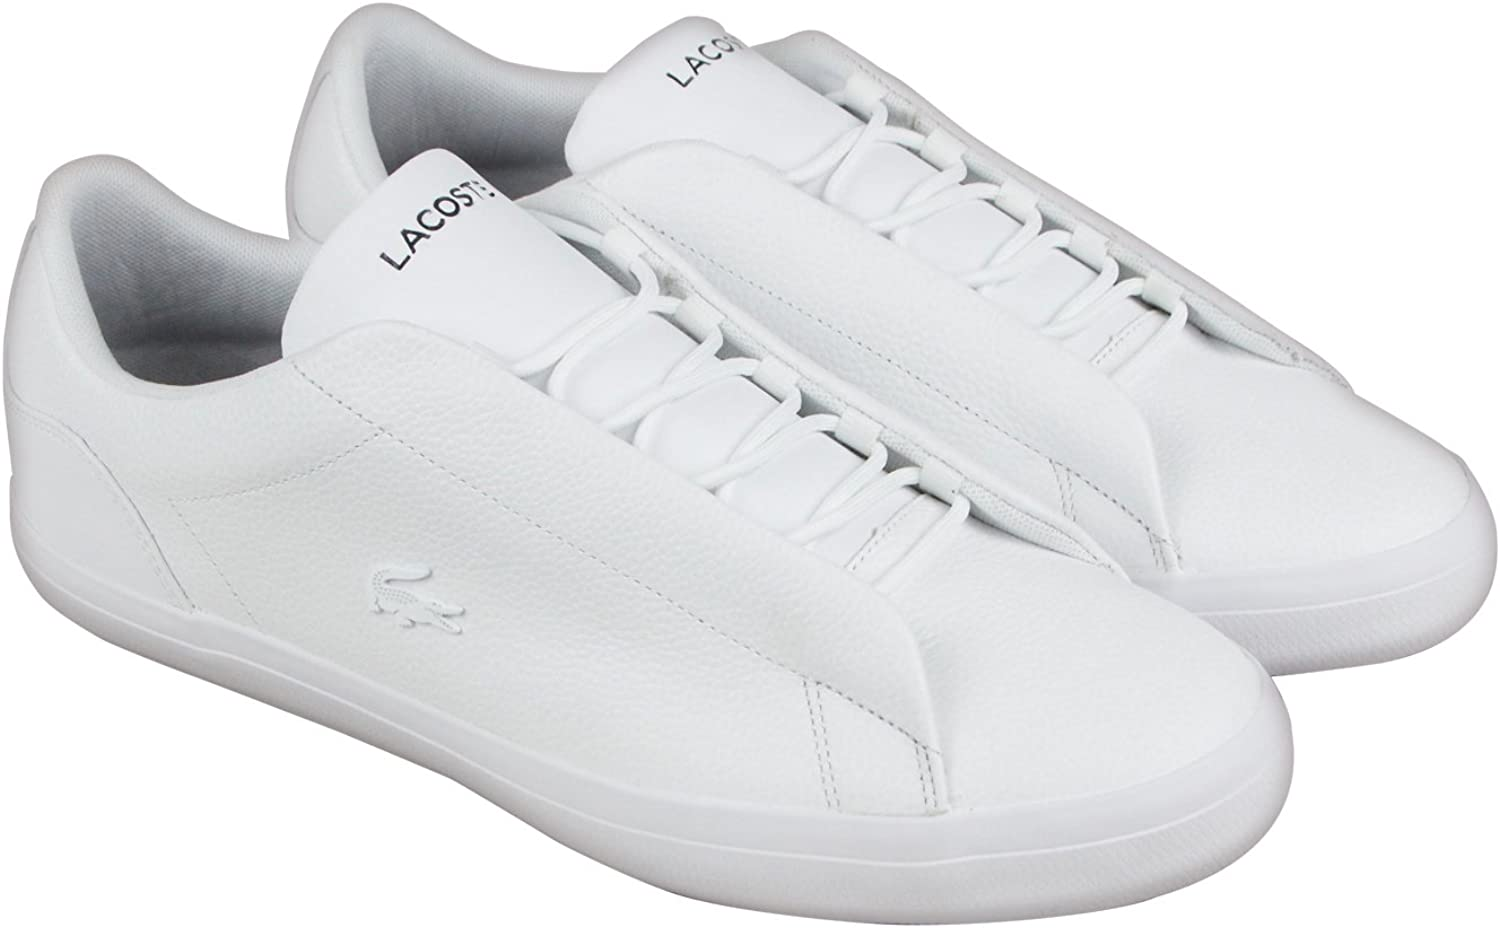 Lacoste Mens Lerond Hidden Lace 318 Leather Ortholite Casual shoes